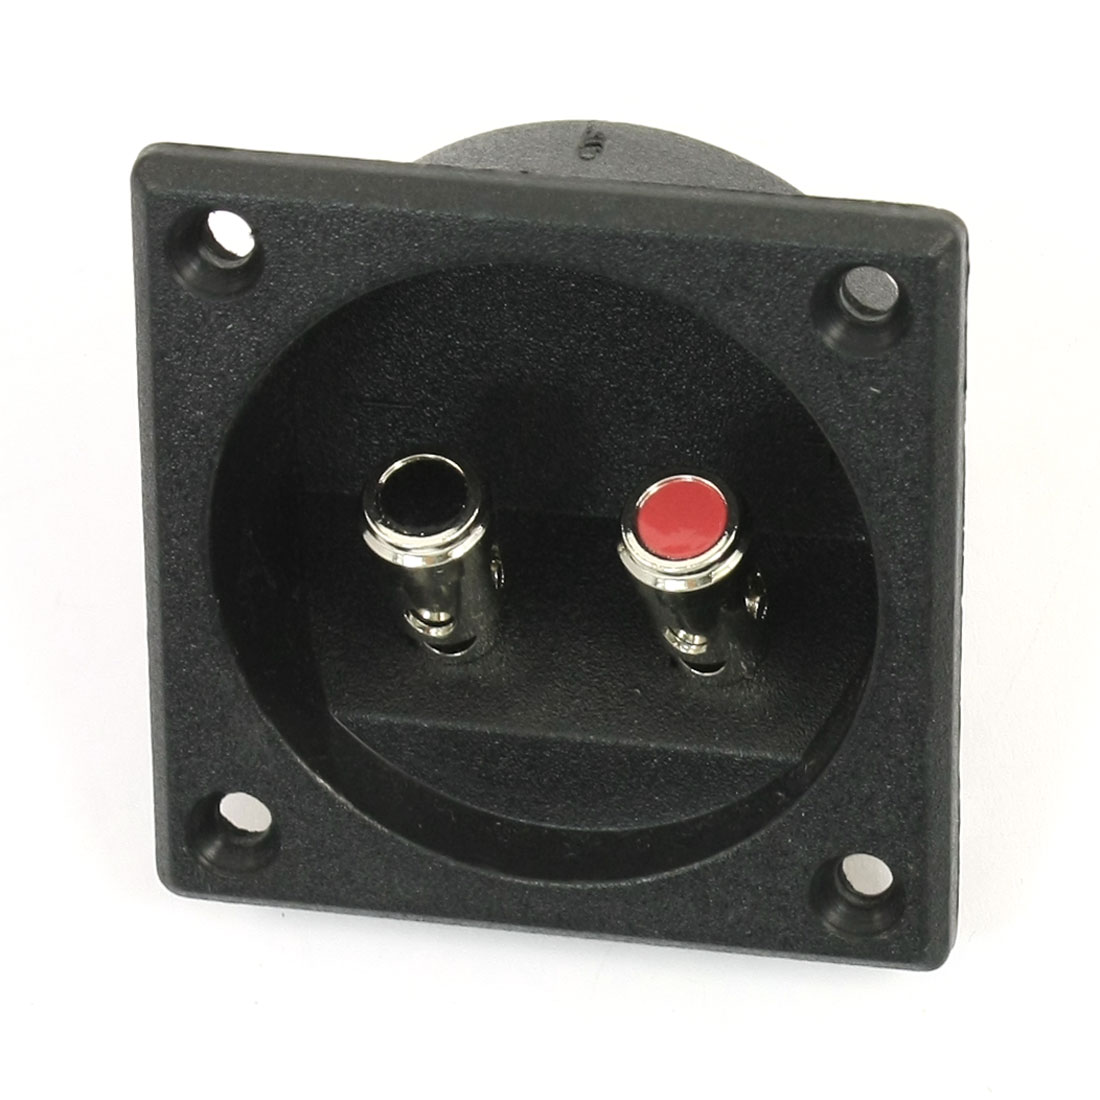 Black Shell Speaker Box Push Spring Type Binding Post 2 Terminal Connector